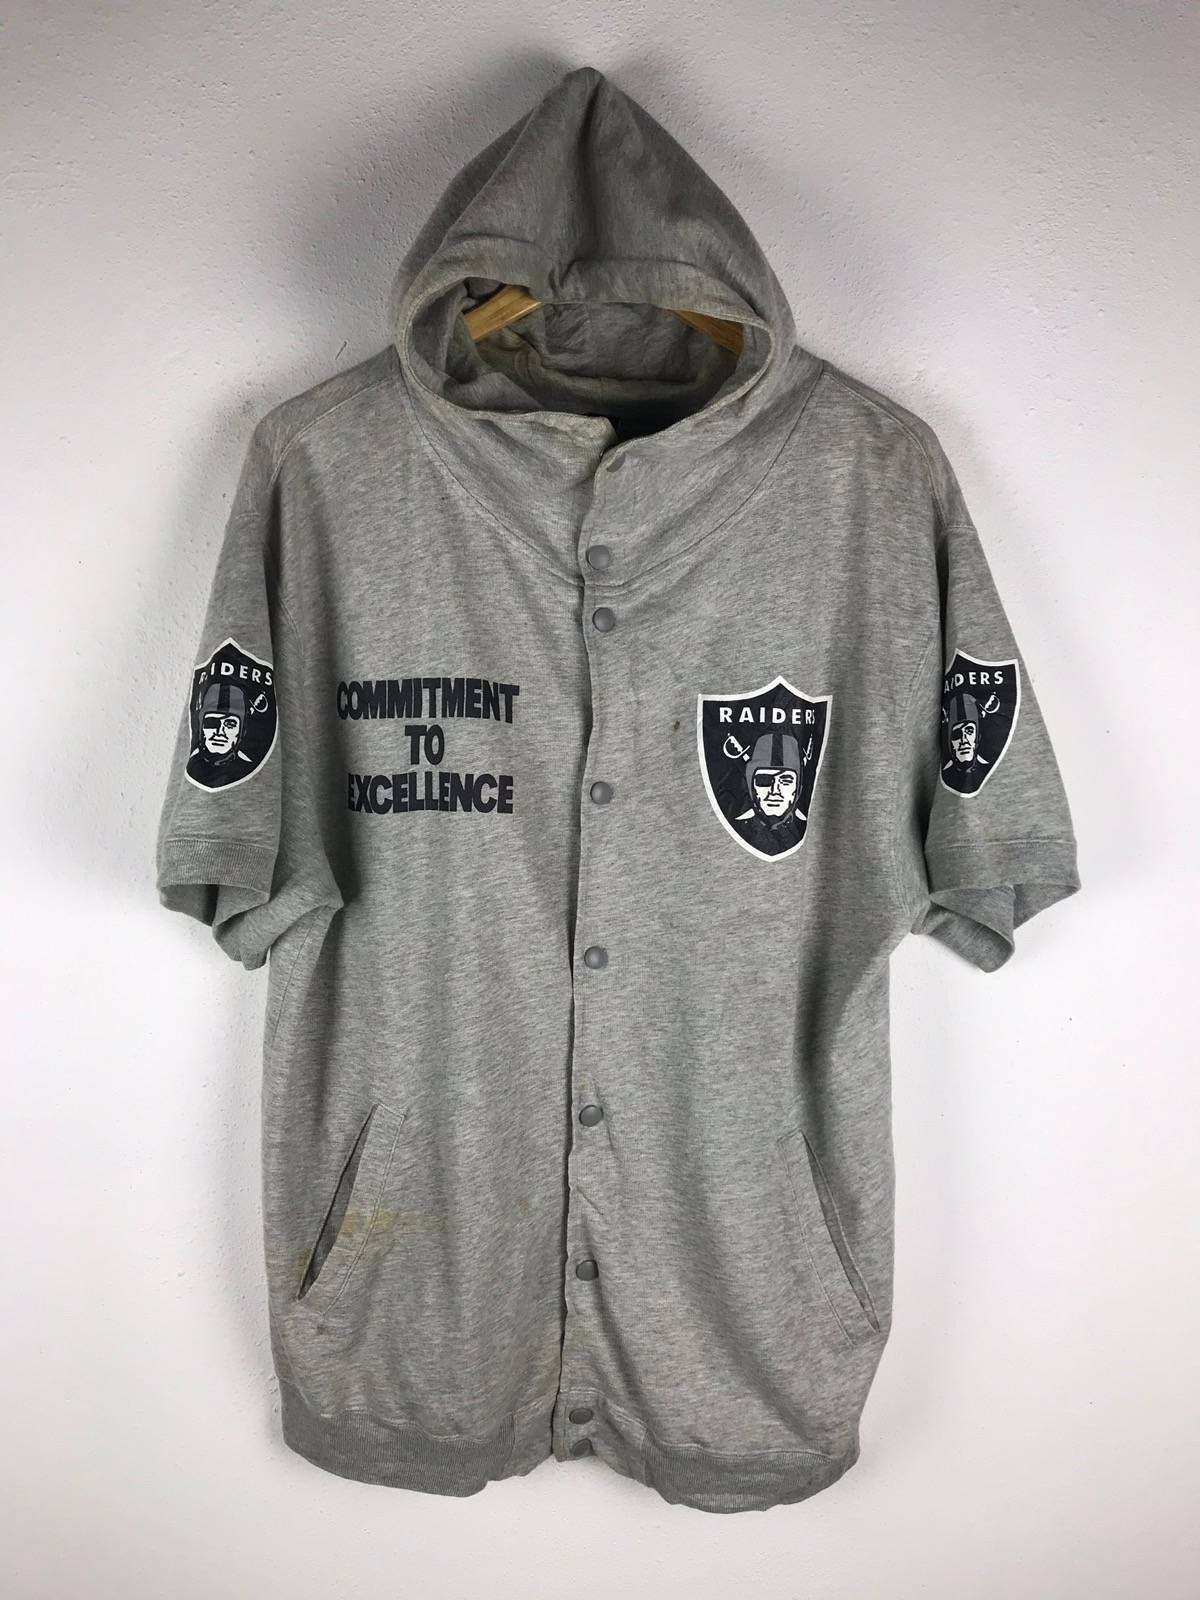 841daf97fbd Nfl × Oakland Raiders × Vintage Oakland Raiders Hoodies Short Sleeve  Sweatshirts Vintage Officially Licensed Products By Goldwin Size M $83